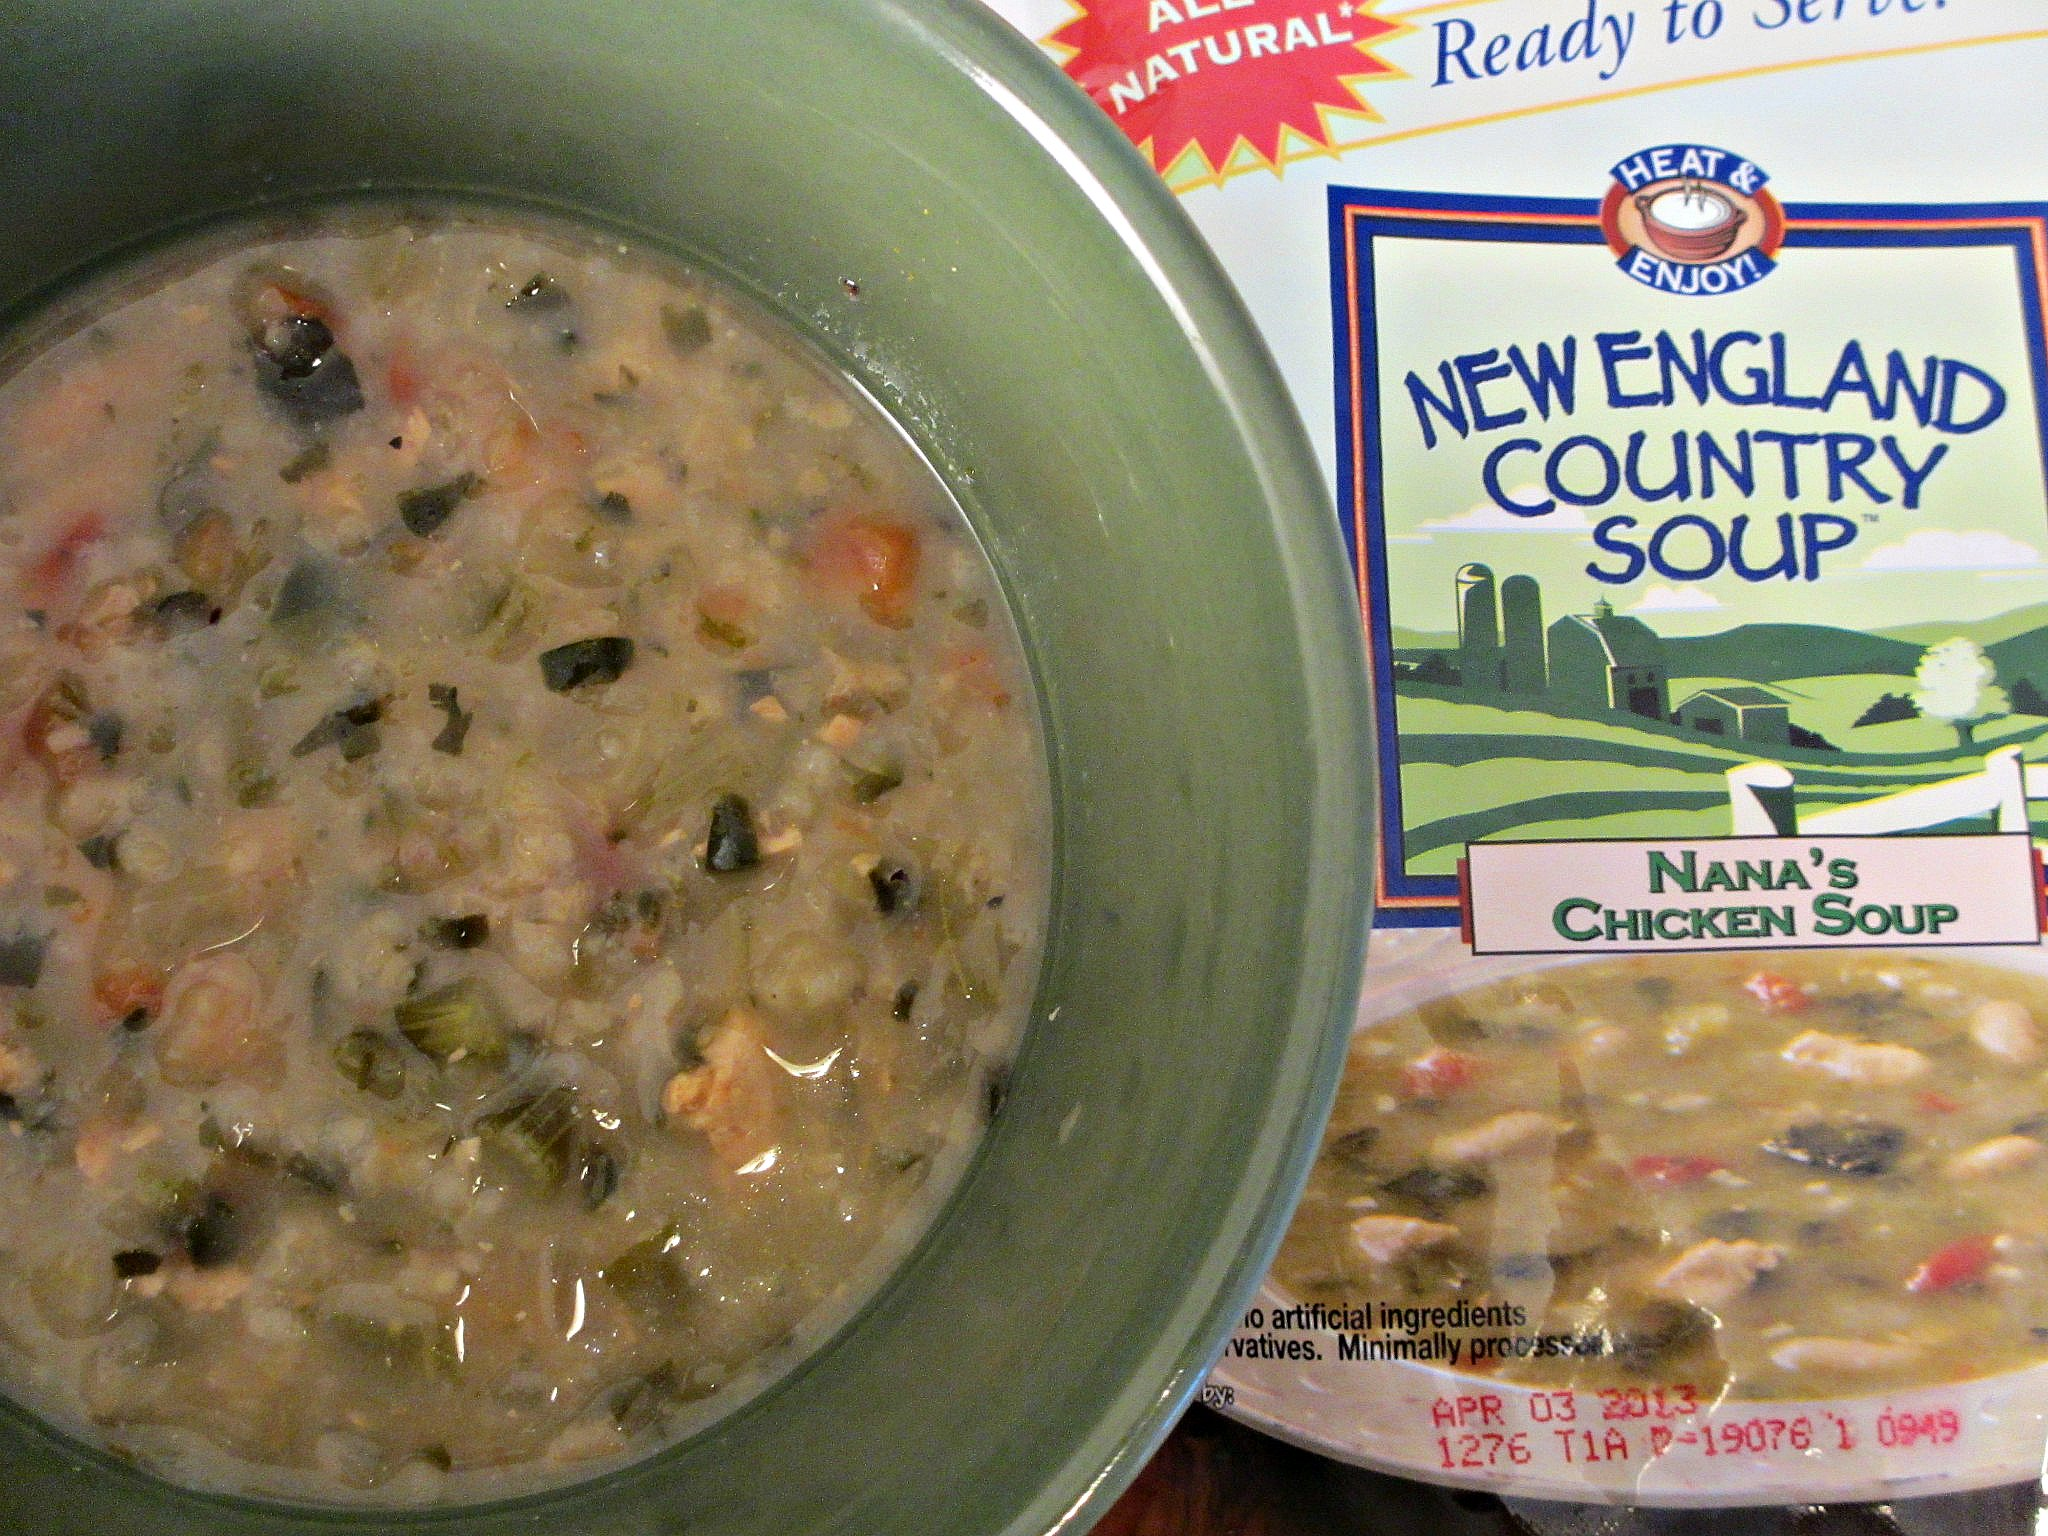 Convenient and natural New England Country Soup